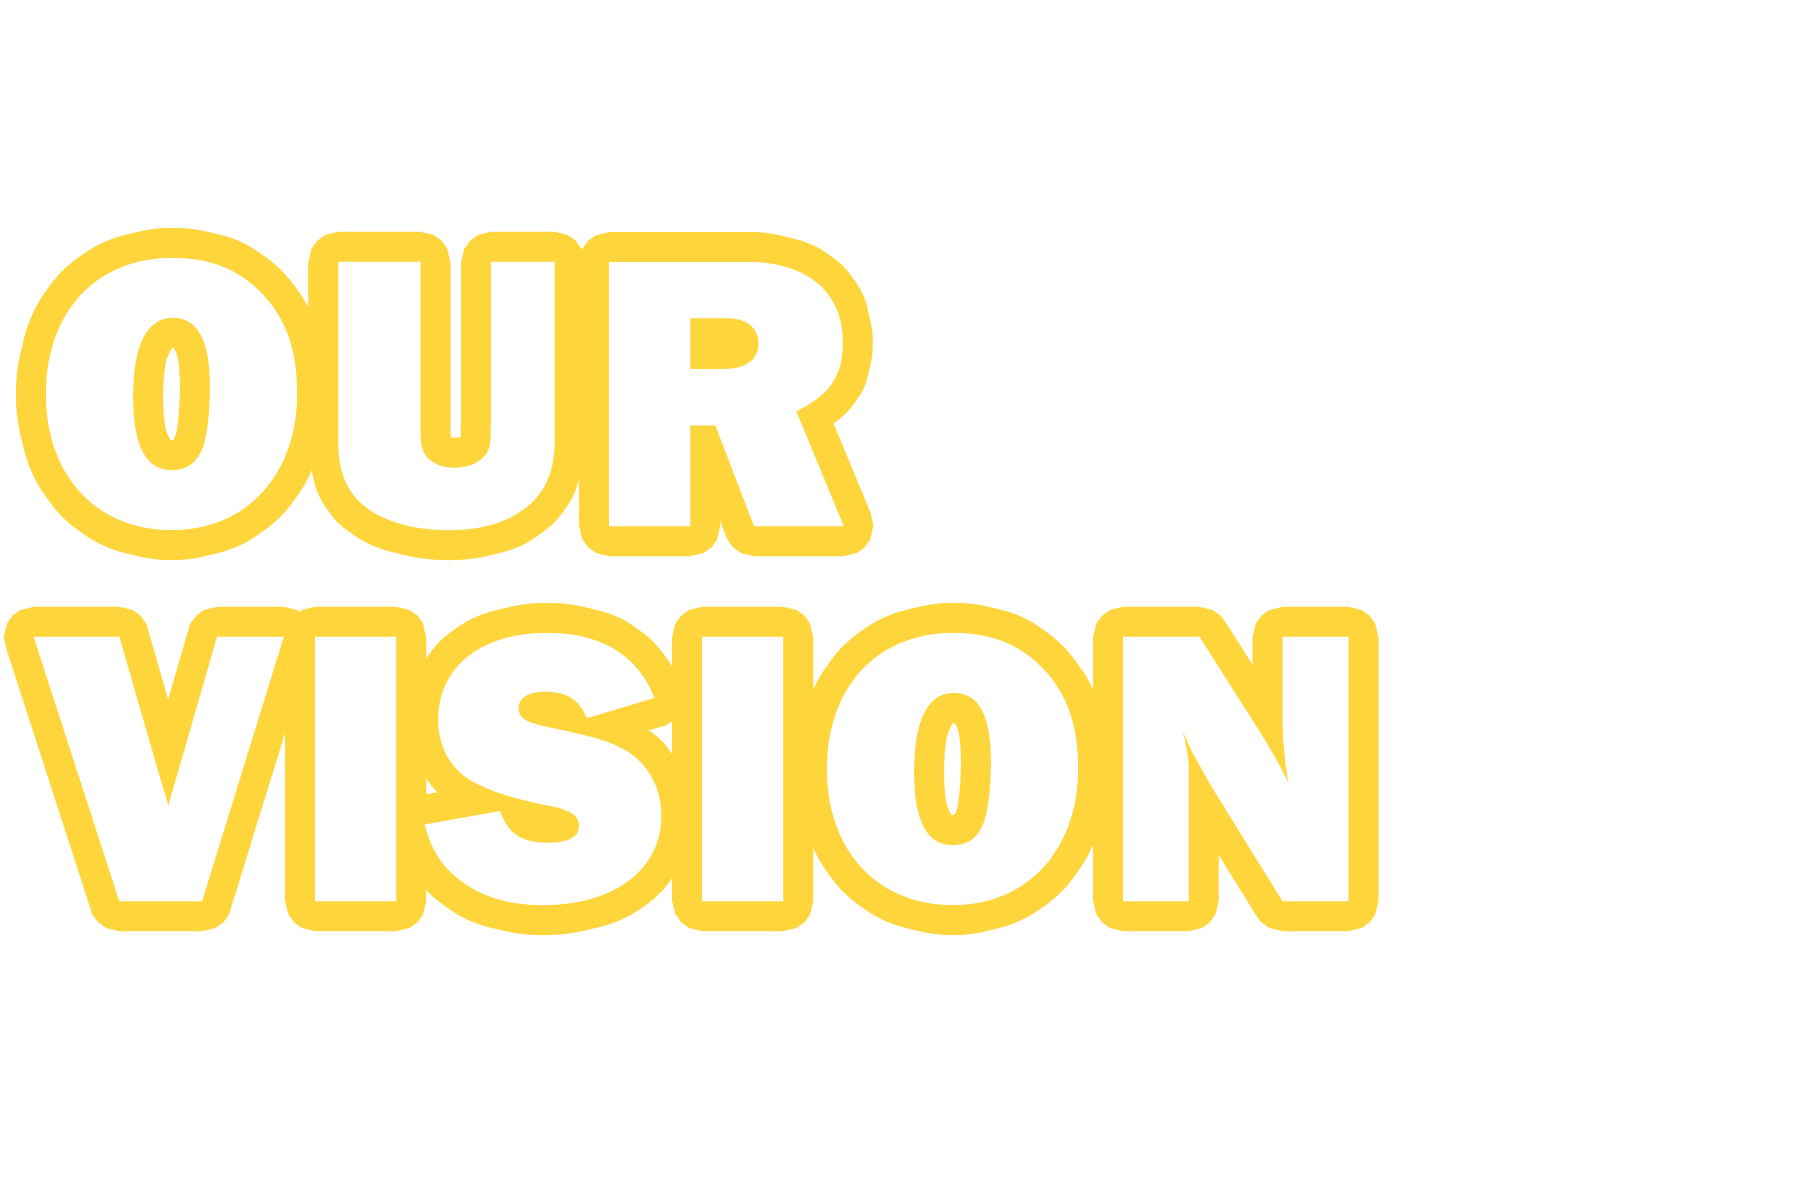 VISION UPDATE